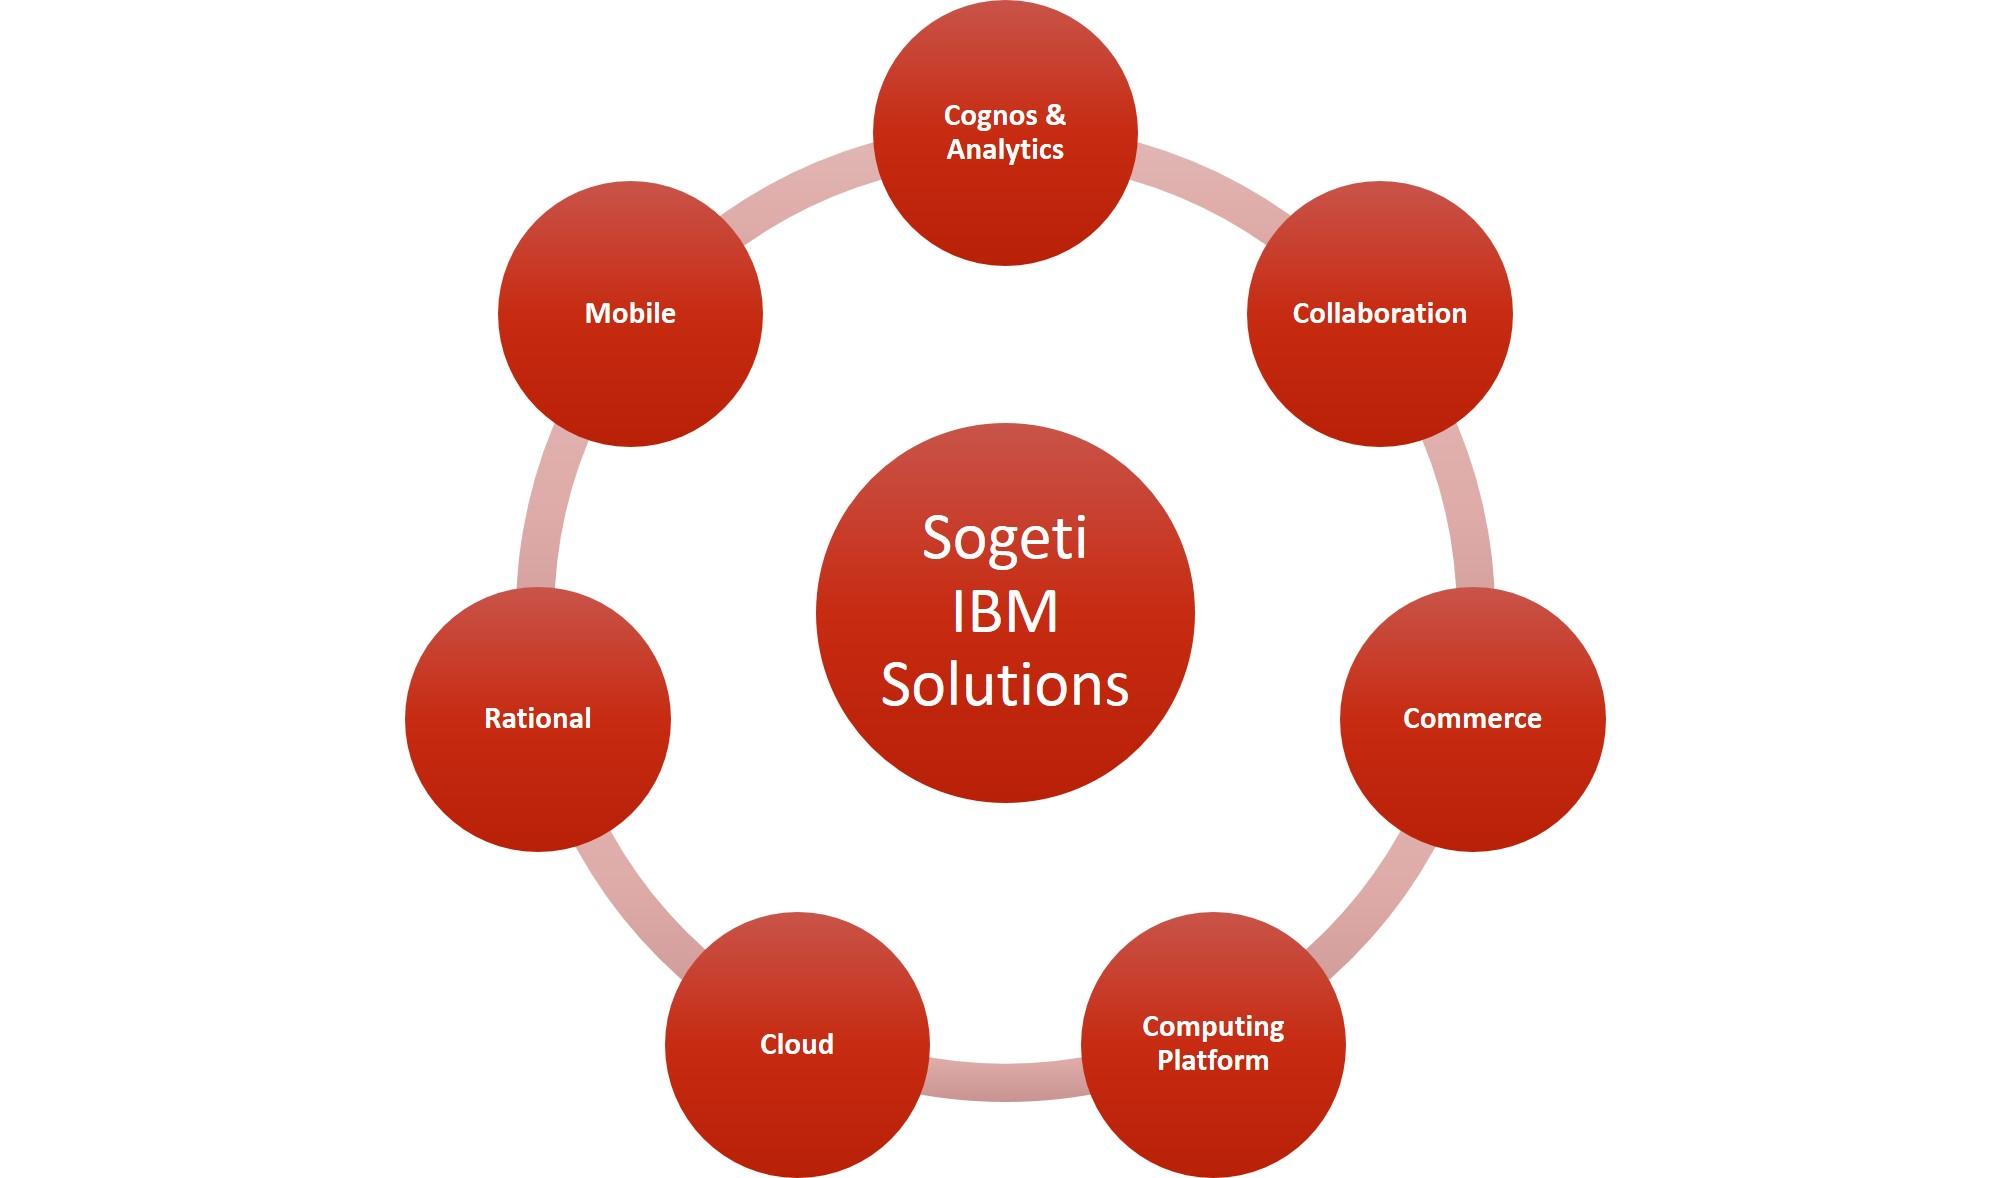 Sogeti IBM solutions